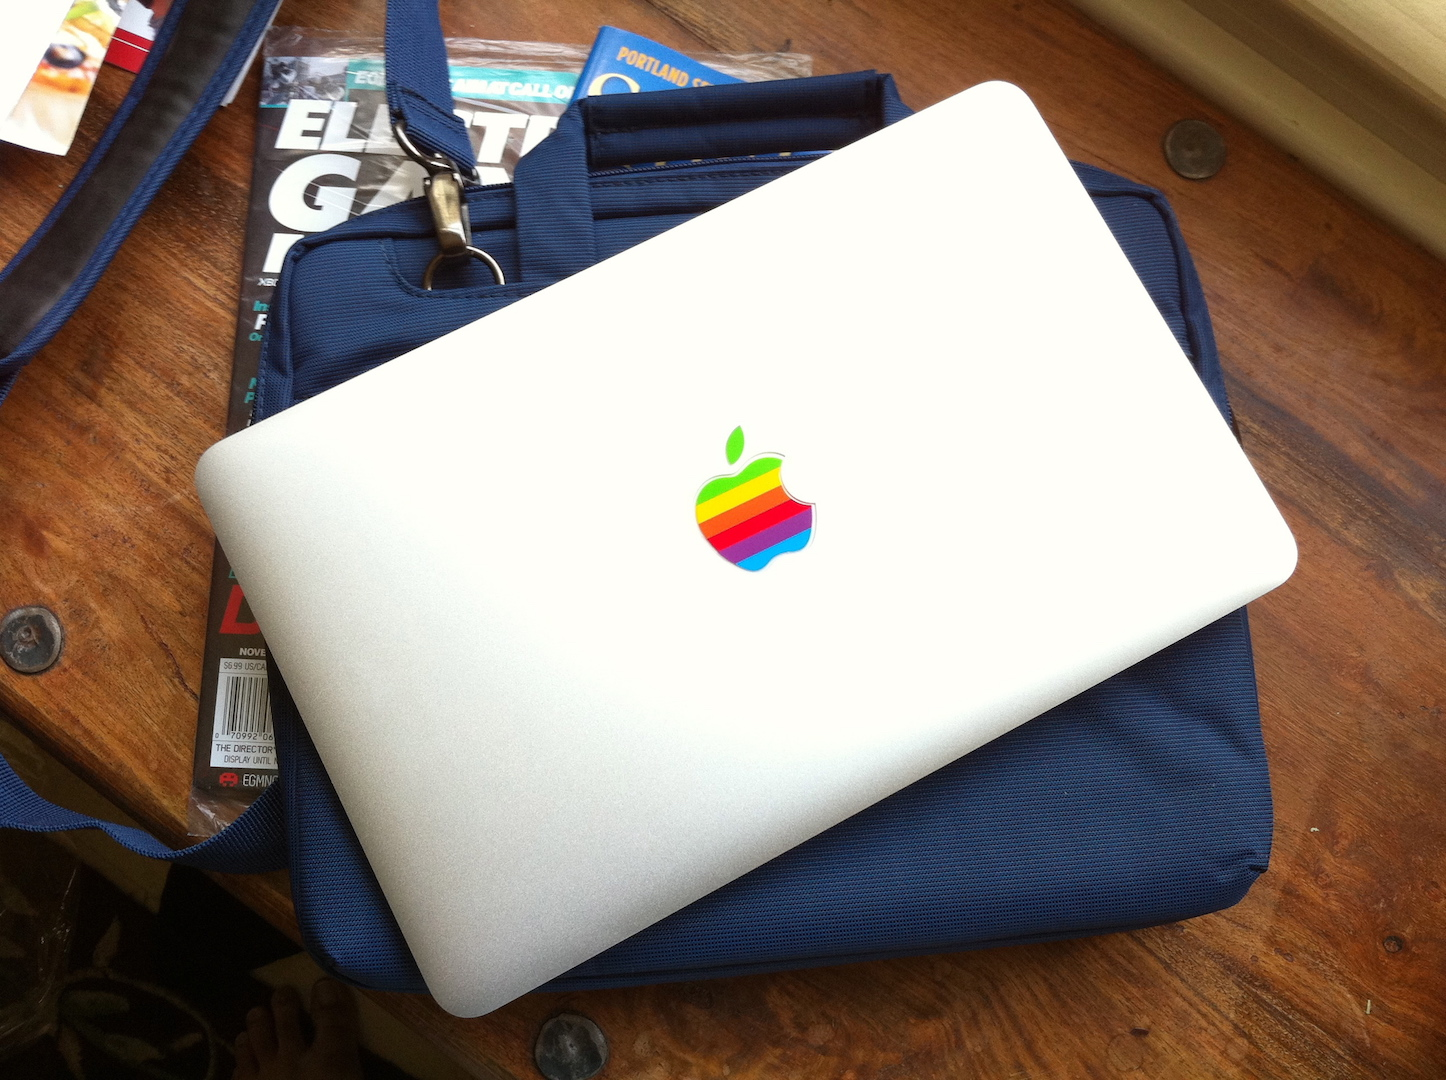 Macbook air colorful logo